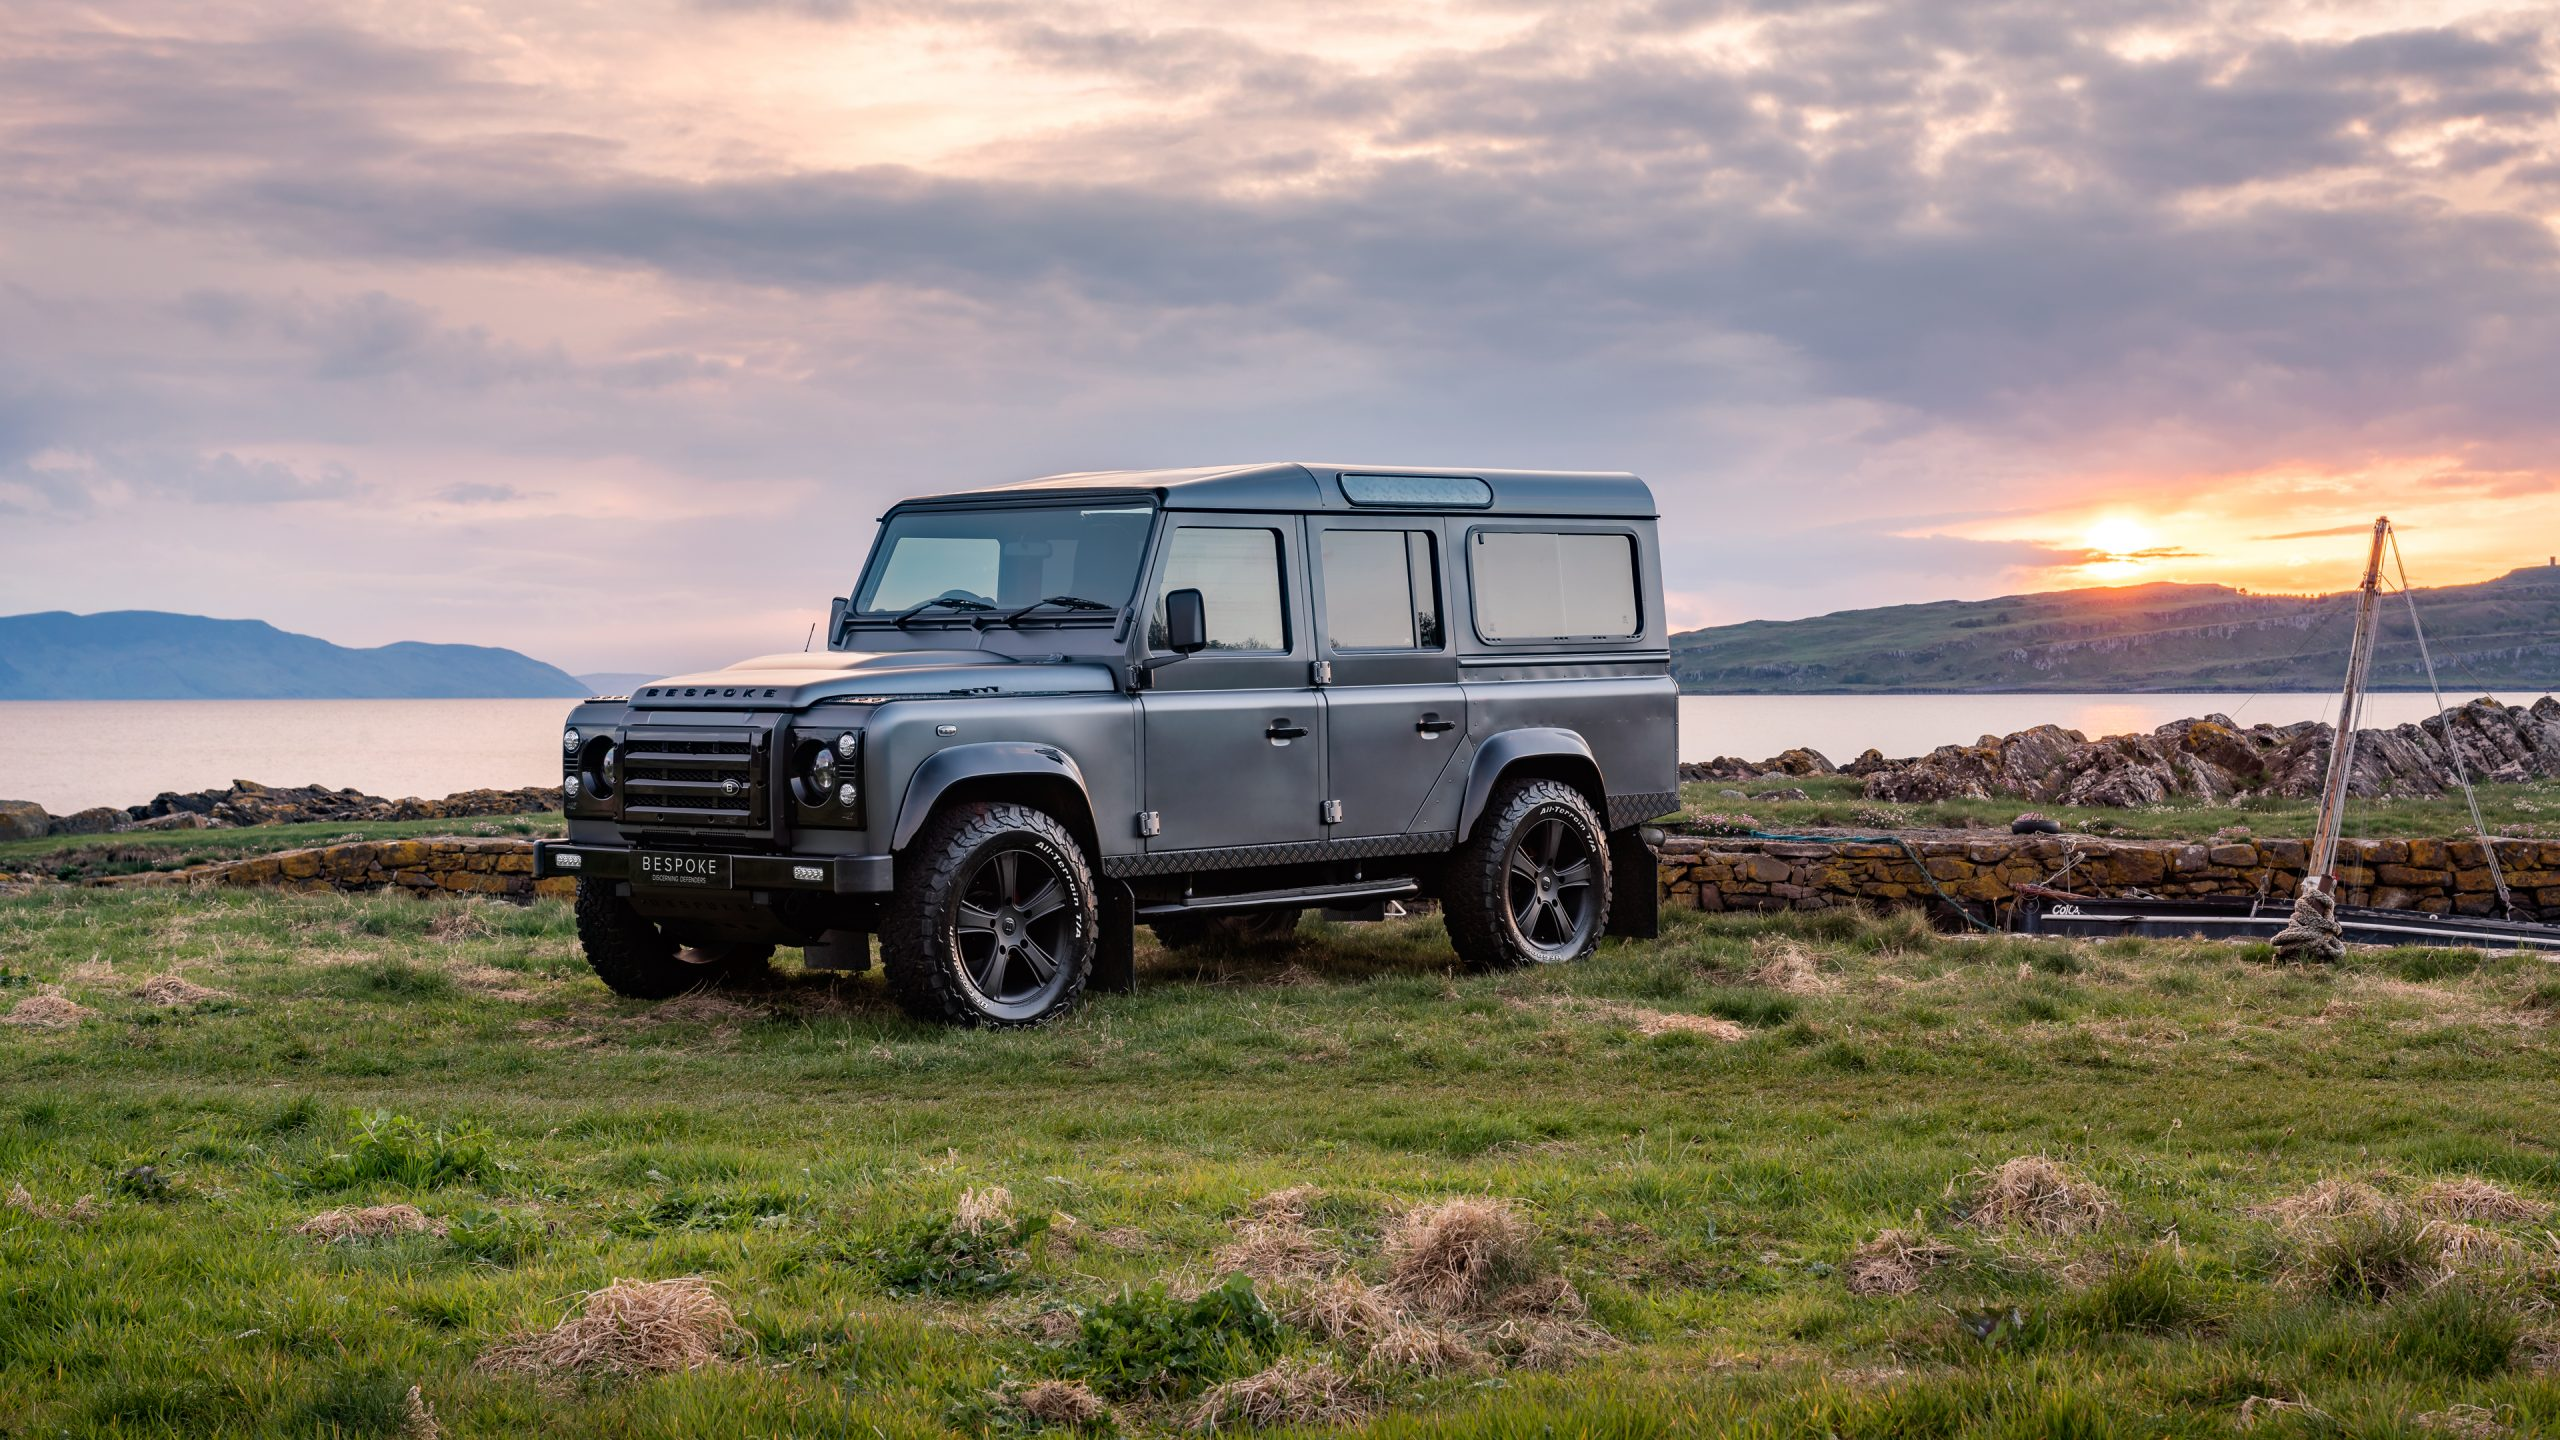 Bespoke defender 110 by the lake at sunset